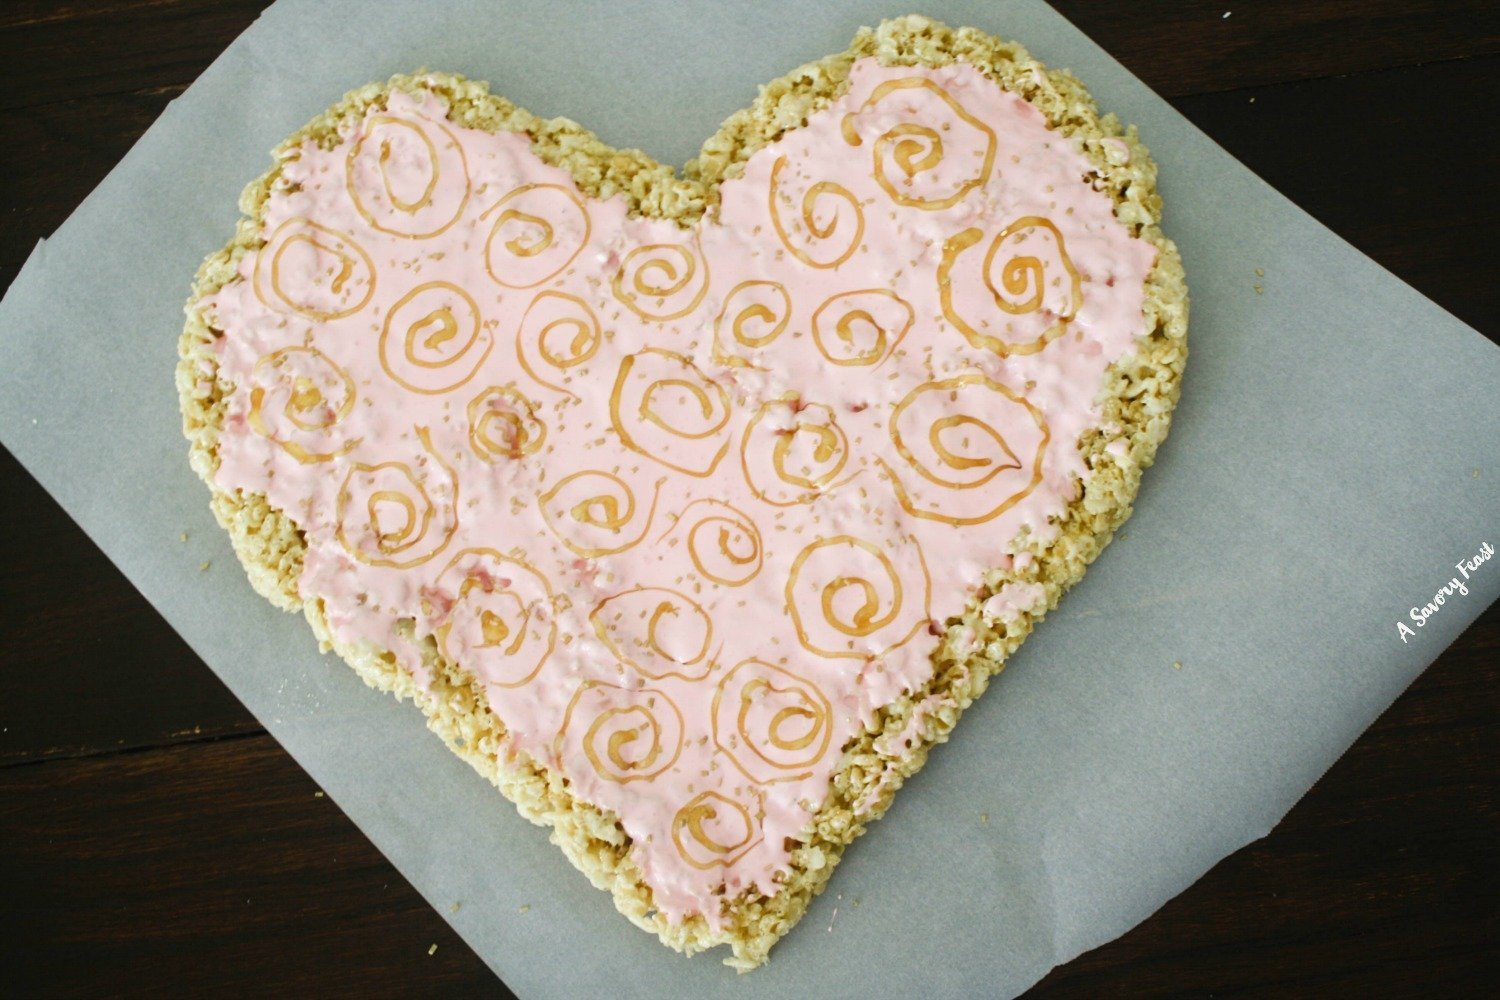 Treat someone special to this beautiful Valentine's Day Rice Krispies Treat Heart! It's a fun treat that is so easy to make. The classic Rice Krispies Treat recipe gets a romantic upgrade for the holiday. | Rice Krispies Treat Ideas | Rice Krispie Treat | Valentine's Day Dessert | Valentine's Day Treat